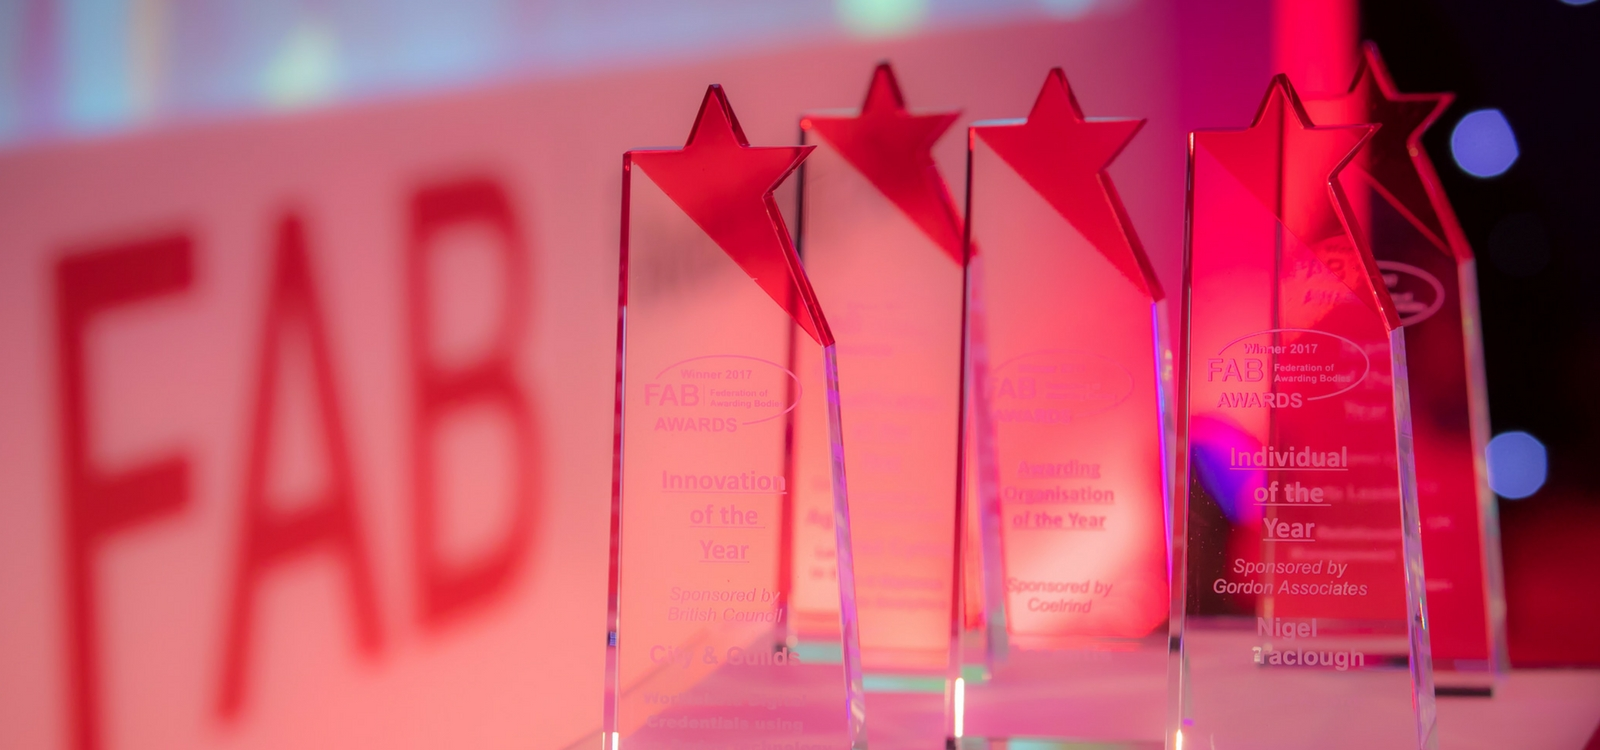 Training Qualifications UK and The Skills Network have 'Collaboration of the Year' FAB Award in their sights